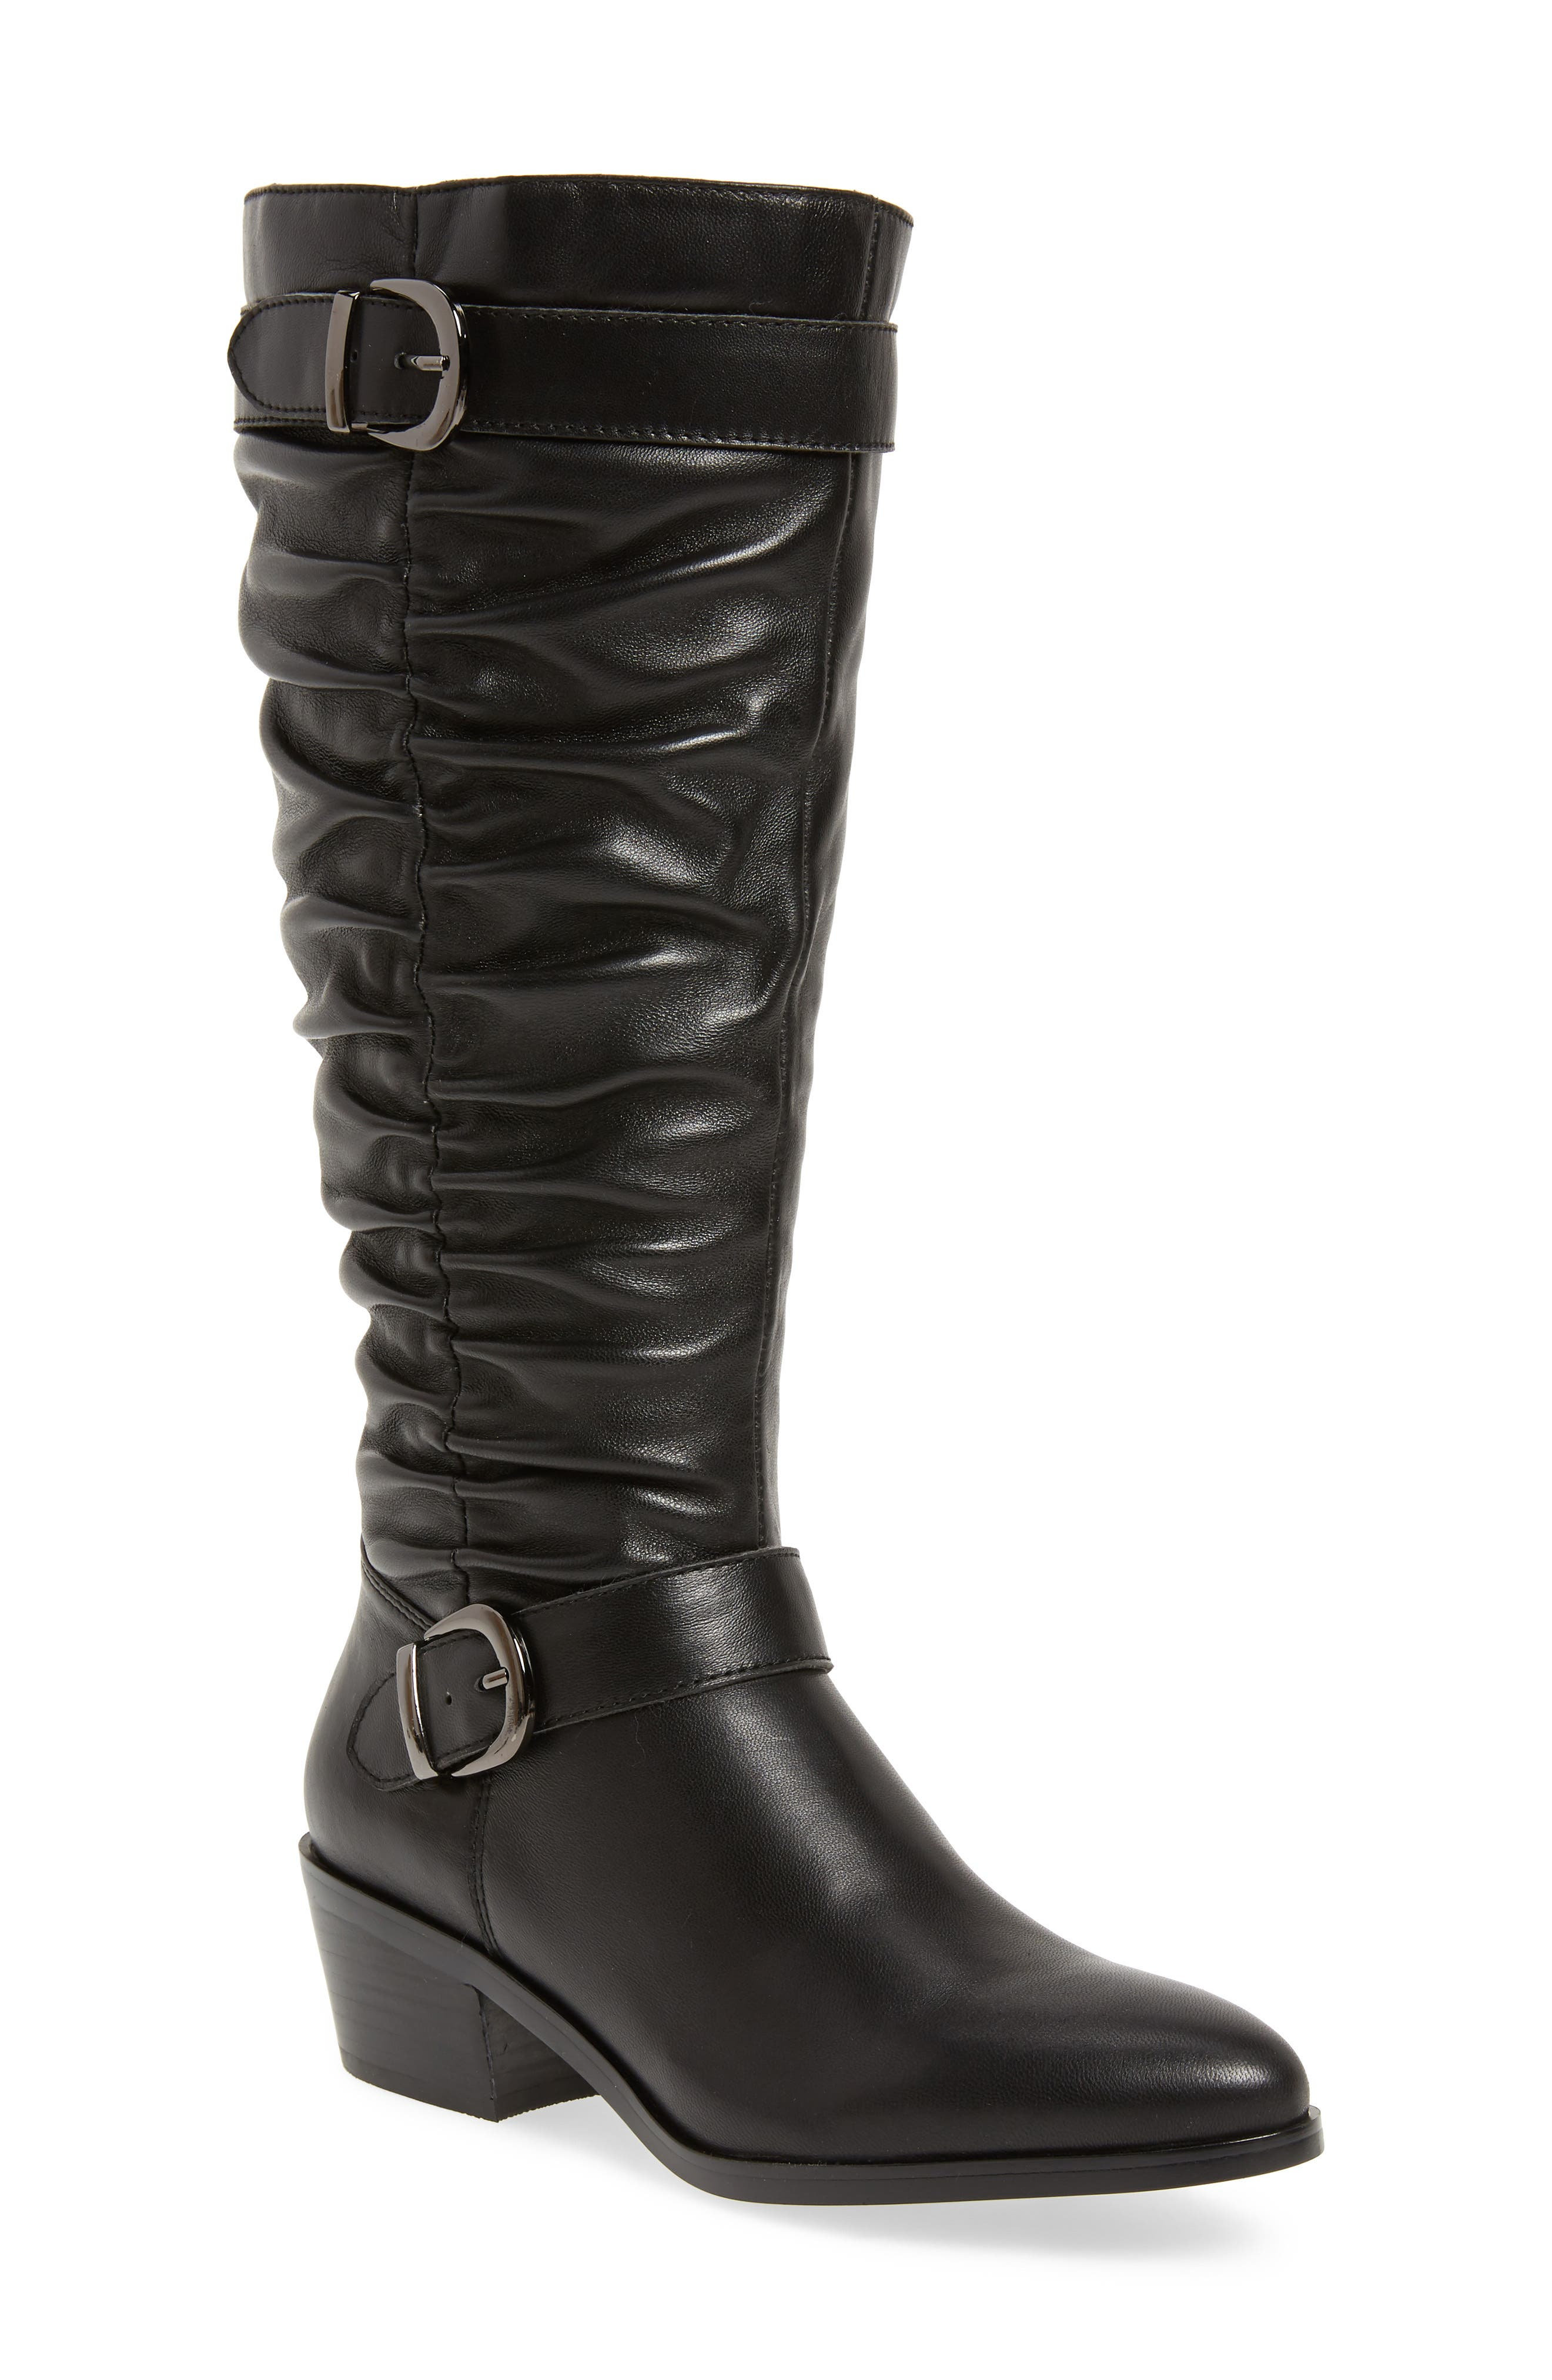 David Tate Cache 16 Boot, Black